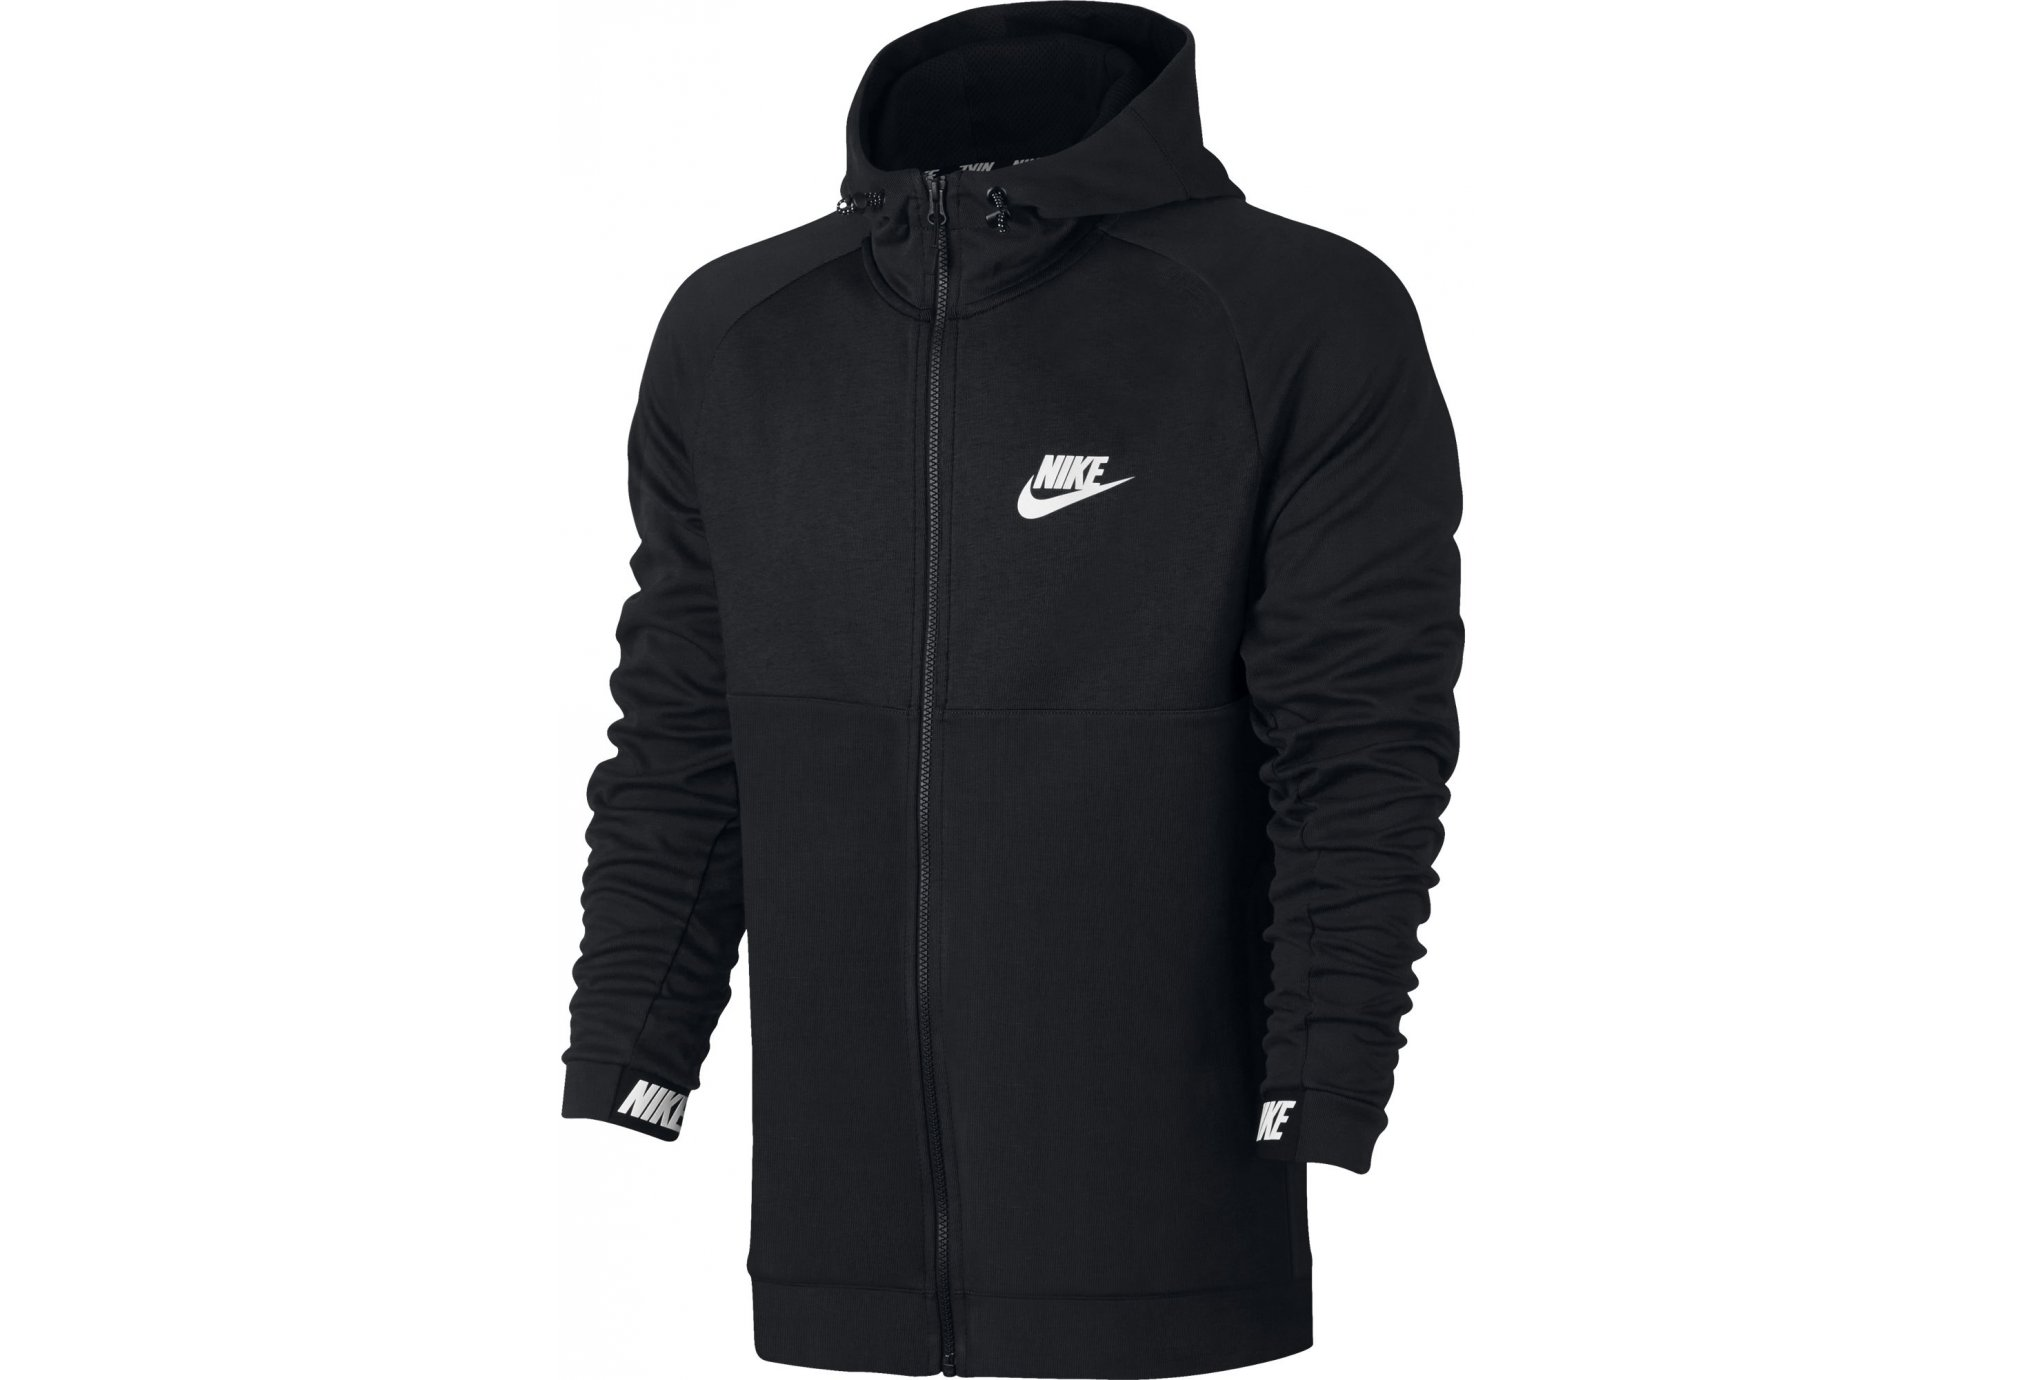 Nike Advance 15 M vêtement running homme